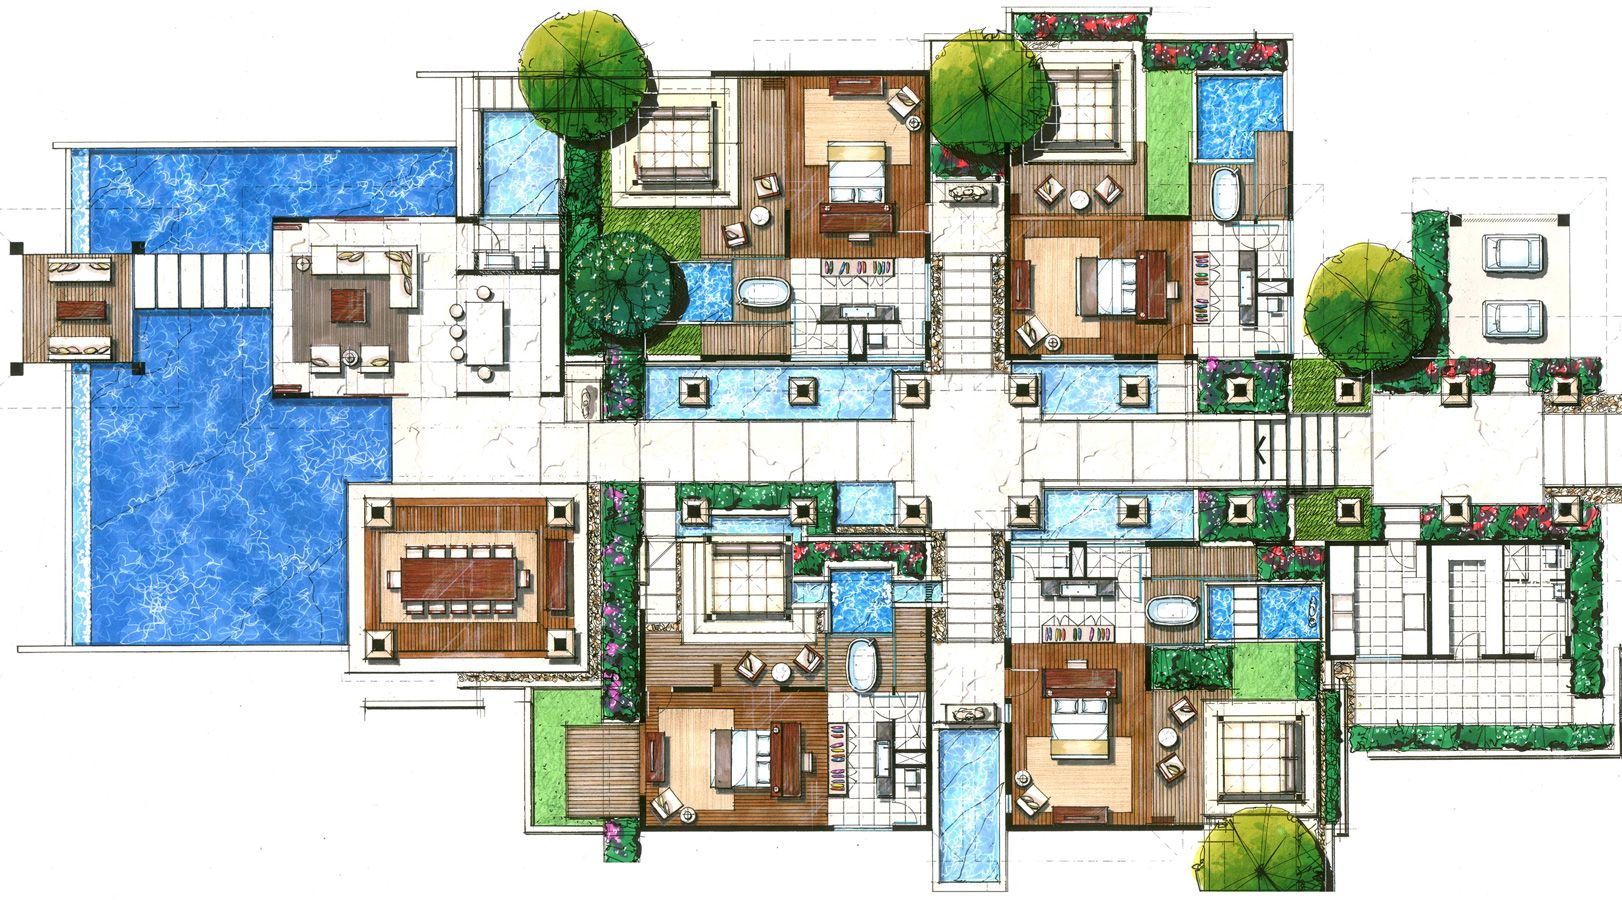 3 D Floor Plans Villas Resorts Joy Studio Design Gallery Best Design Resort Design Plan Resort Plan Floor Plan Design